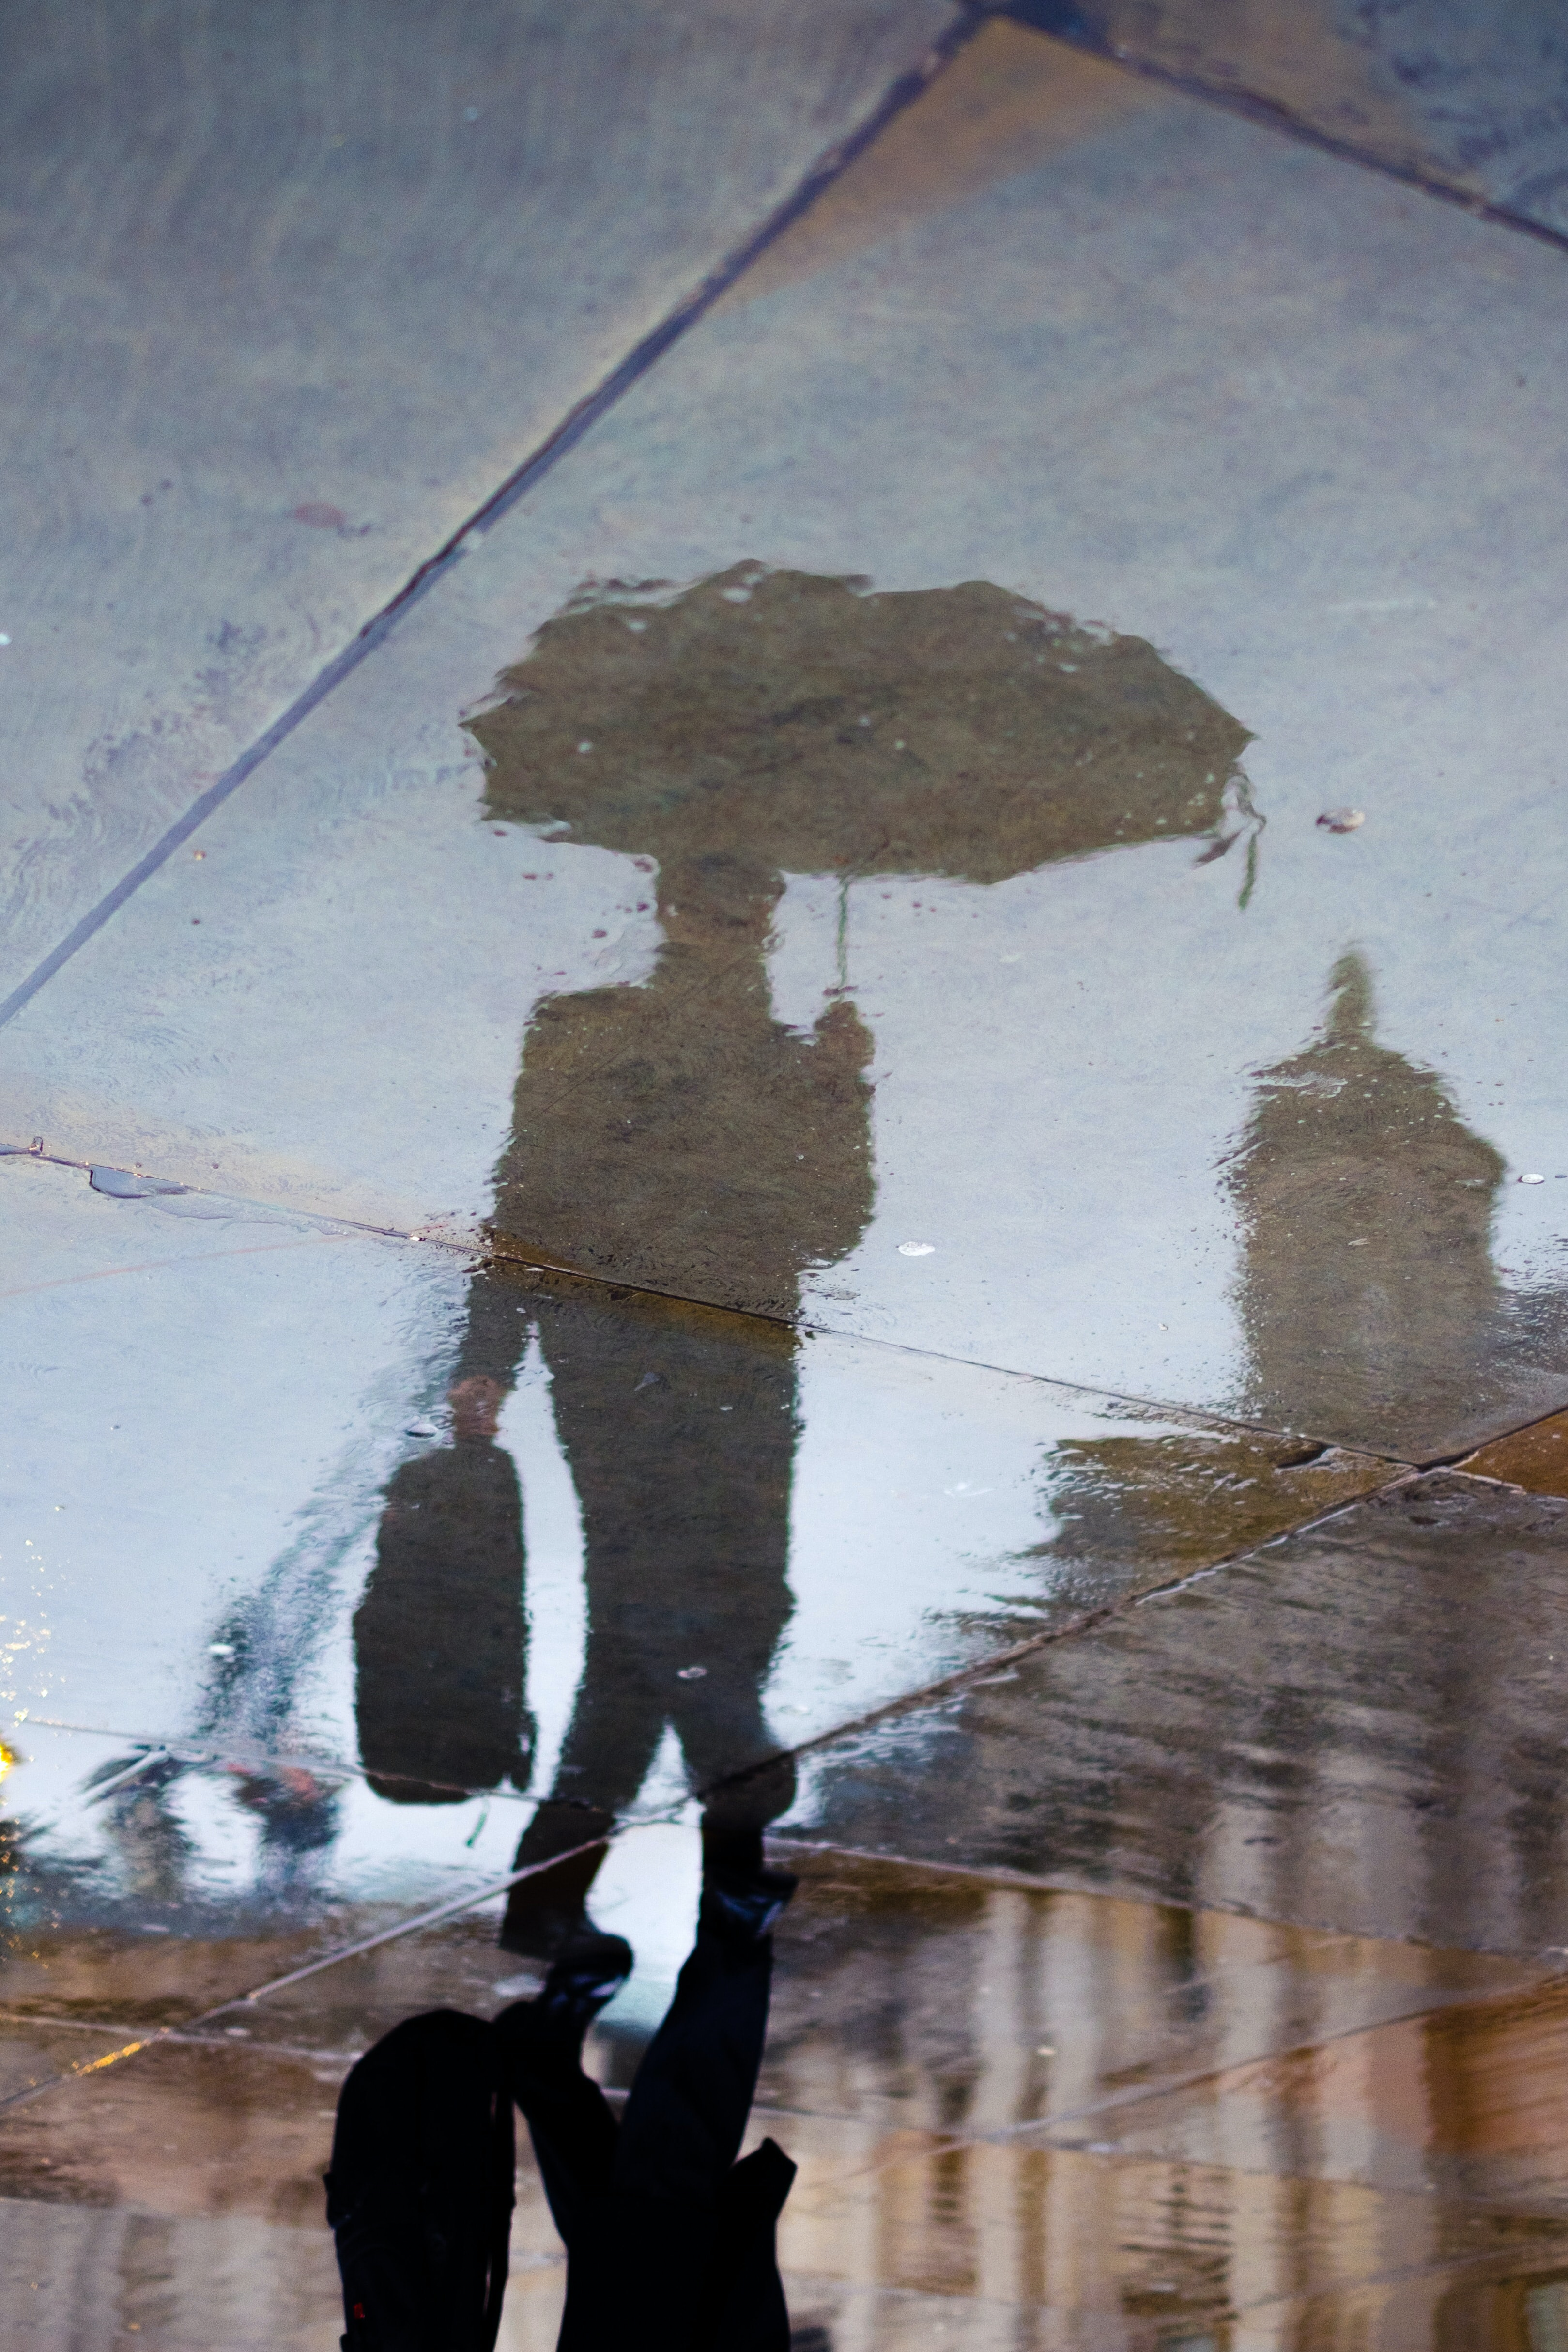 reflection of person holding bag and umbrella